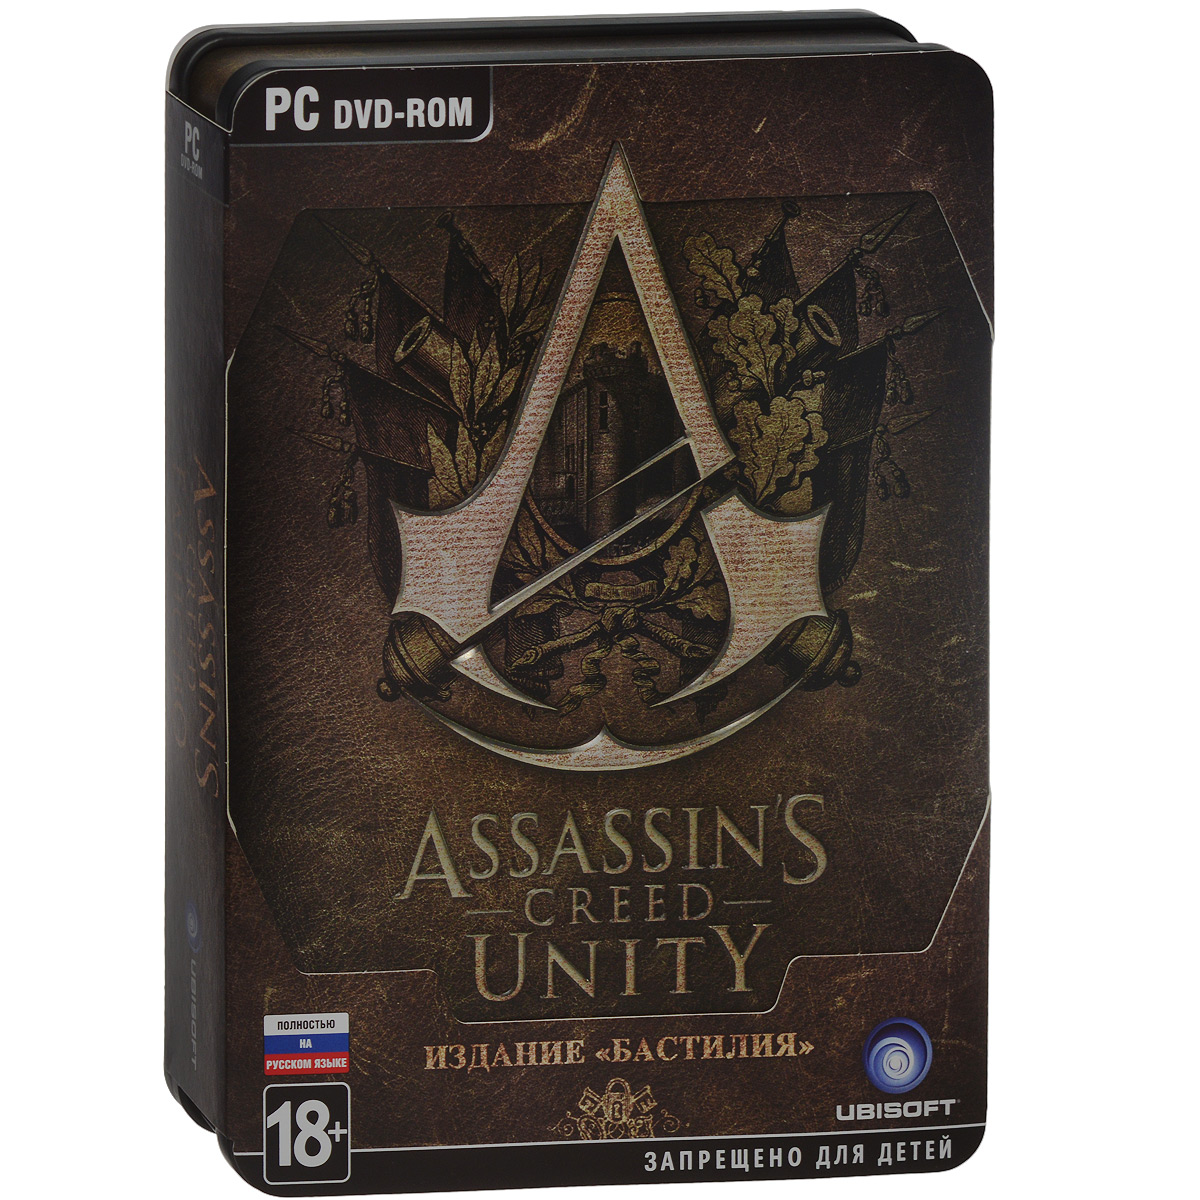 Assassin's Creed: Единство. Bastille Edition (5 DVD), Ubisoft Entertainment